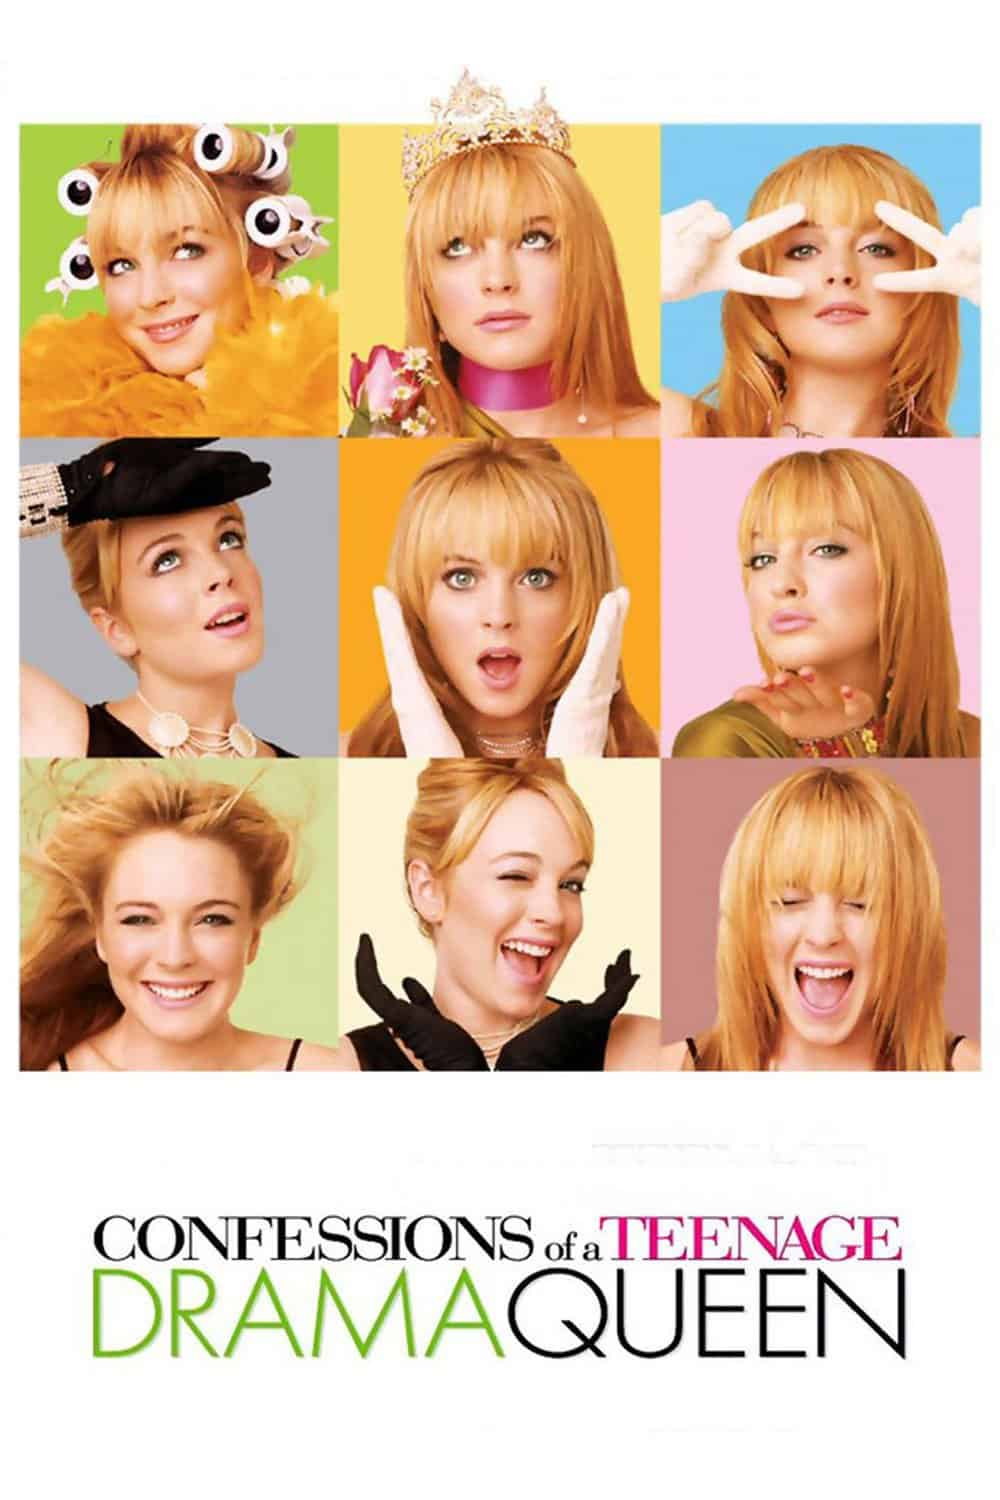 Confessions of a Teenage Drama Queen, 2004